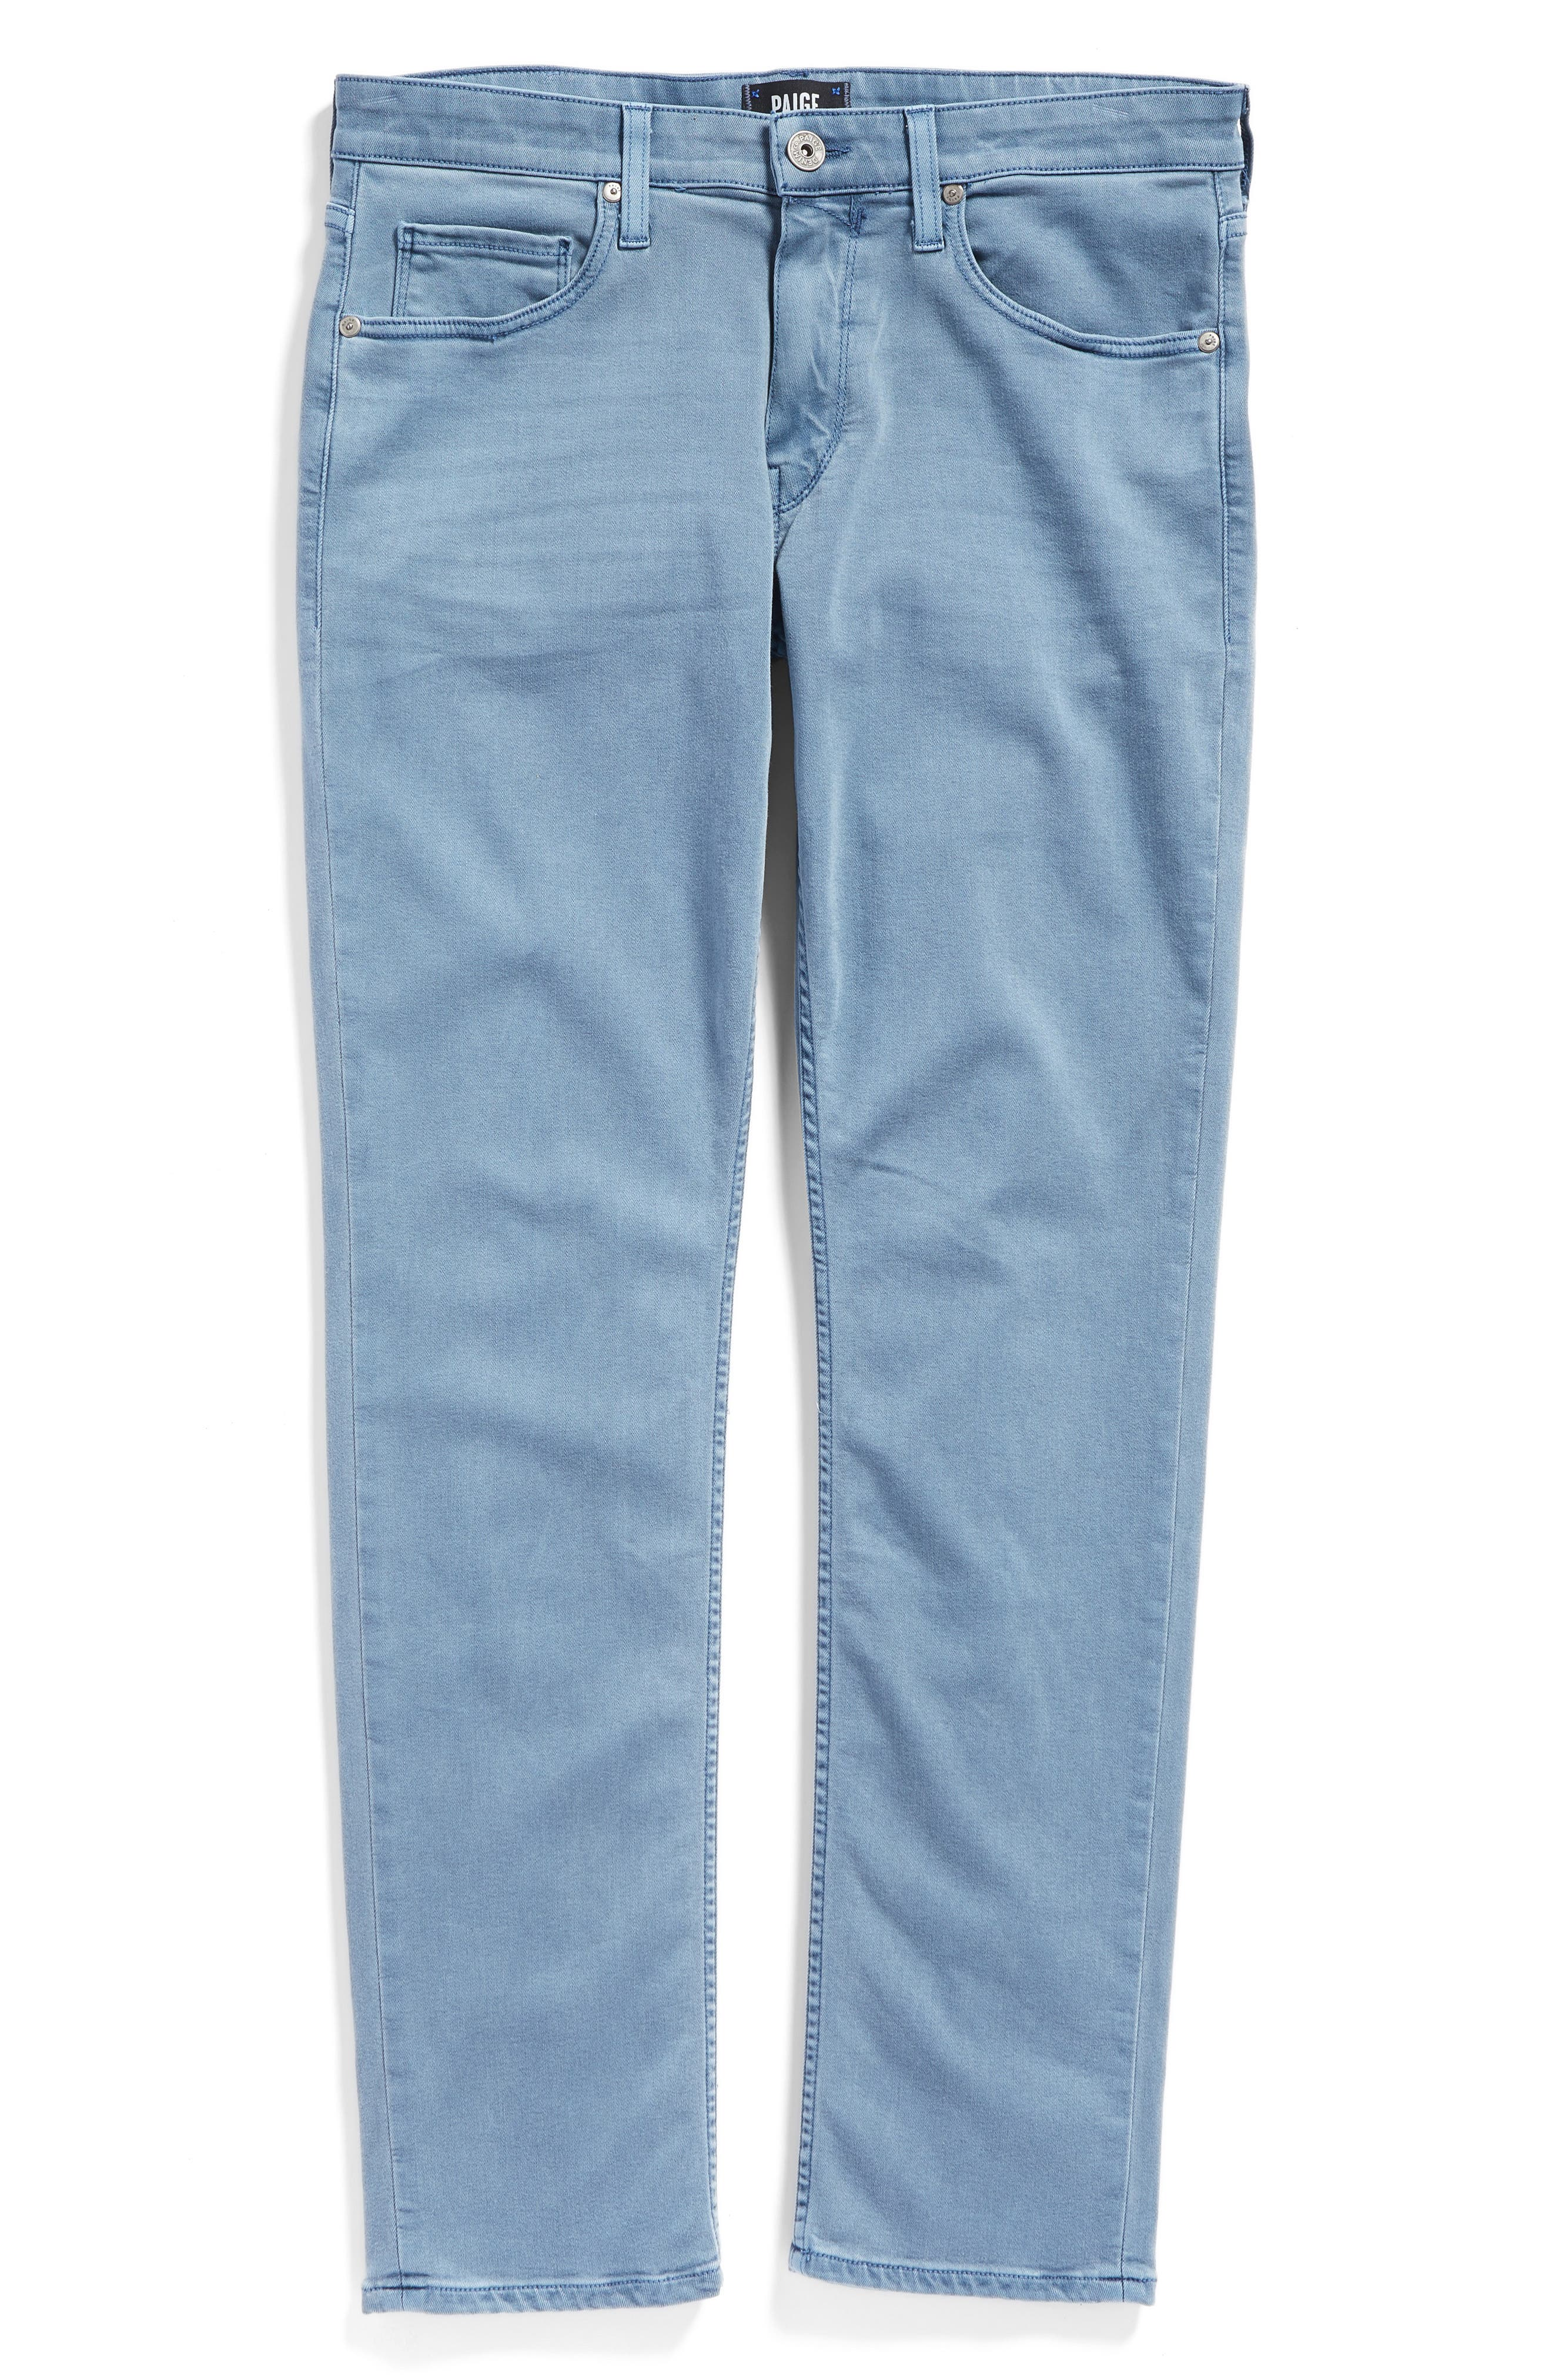 Transcend - Lennox Slim Fit Jeans,                             Alternate thumbnail 7, color,                             Seascape